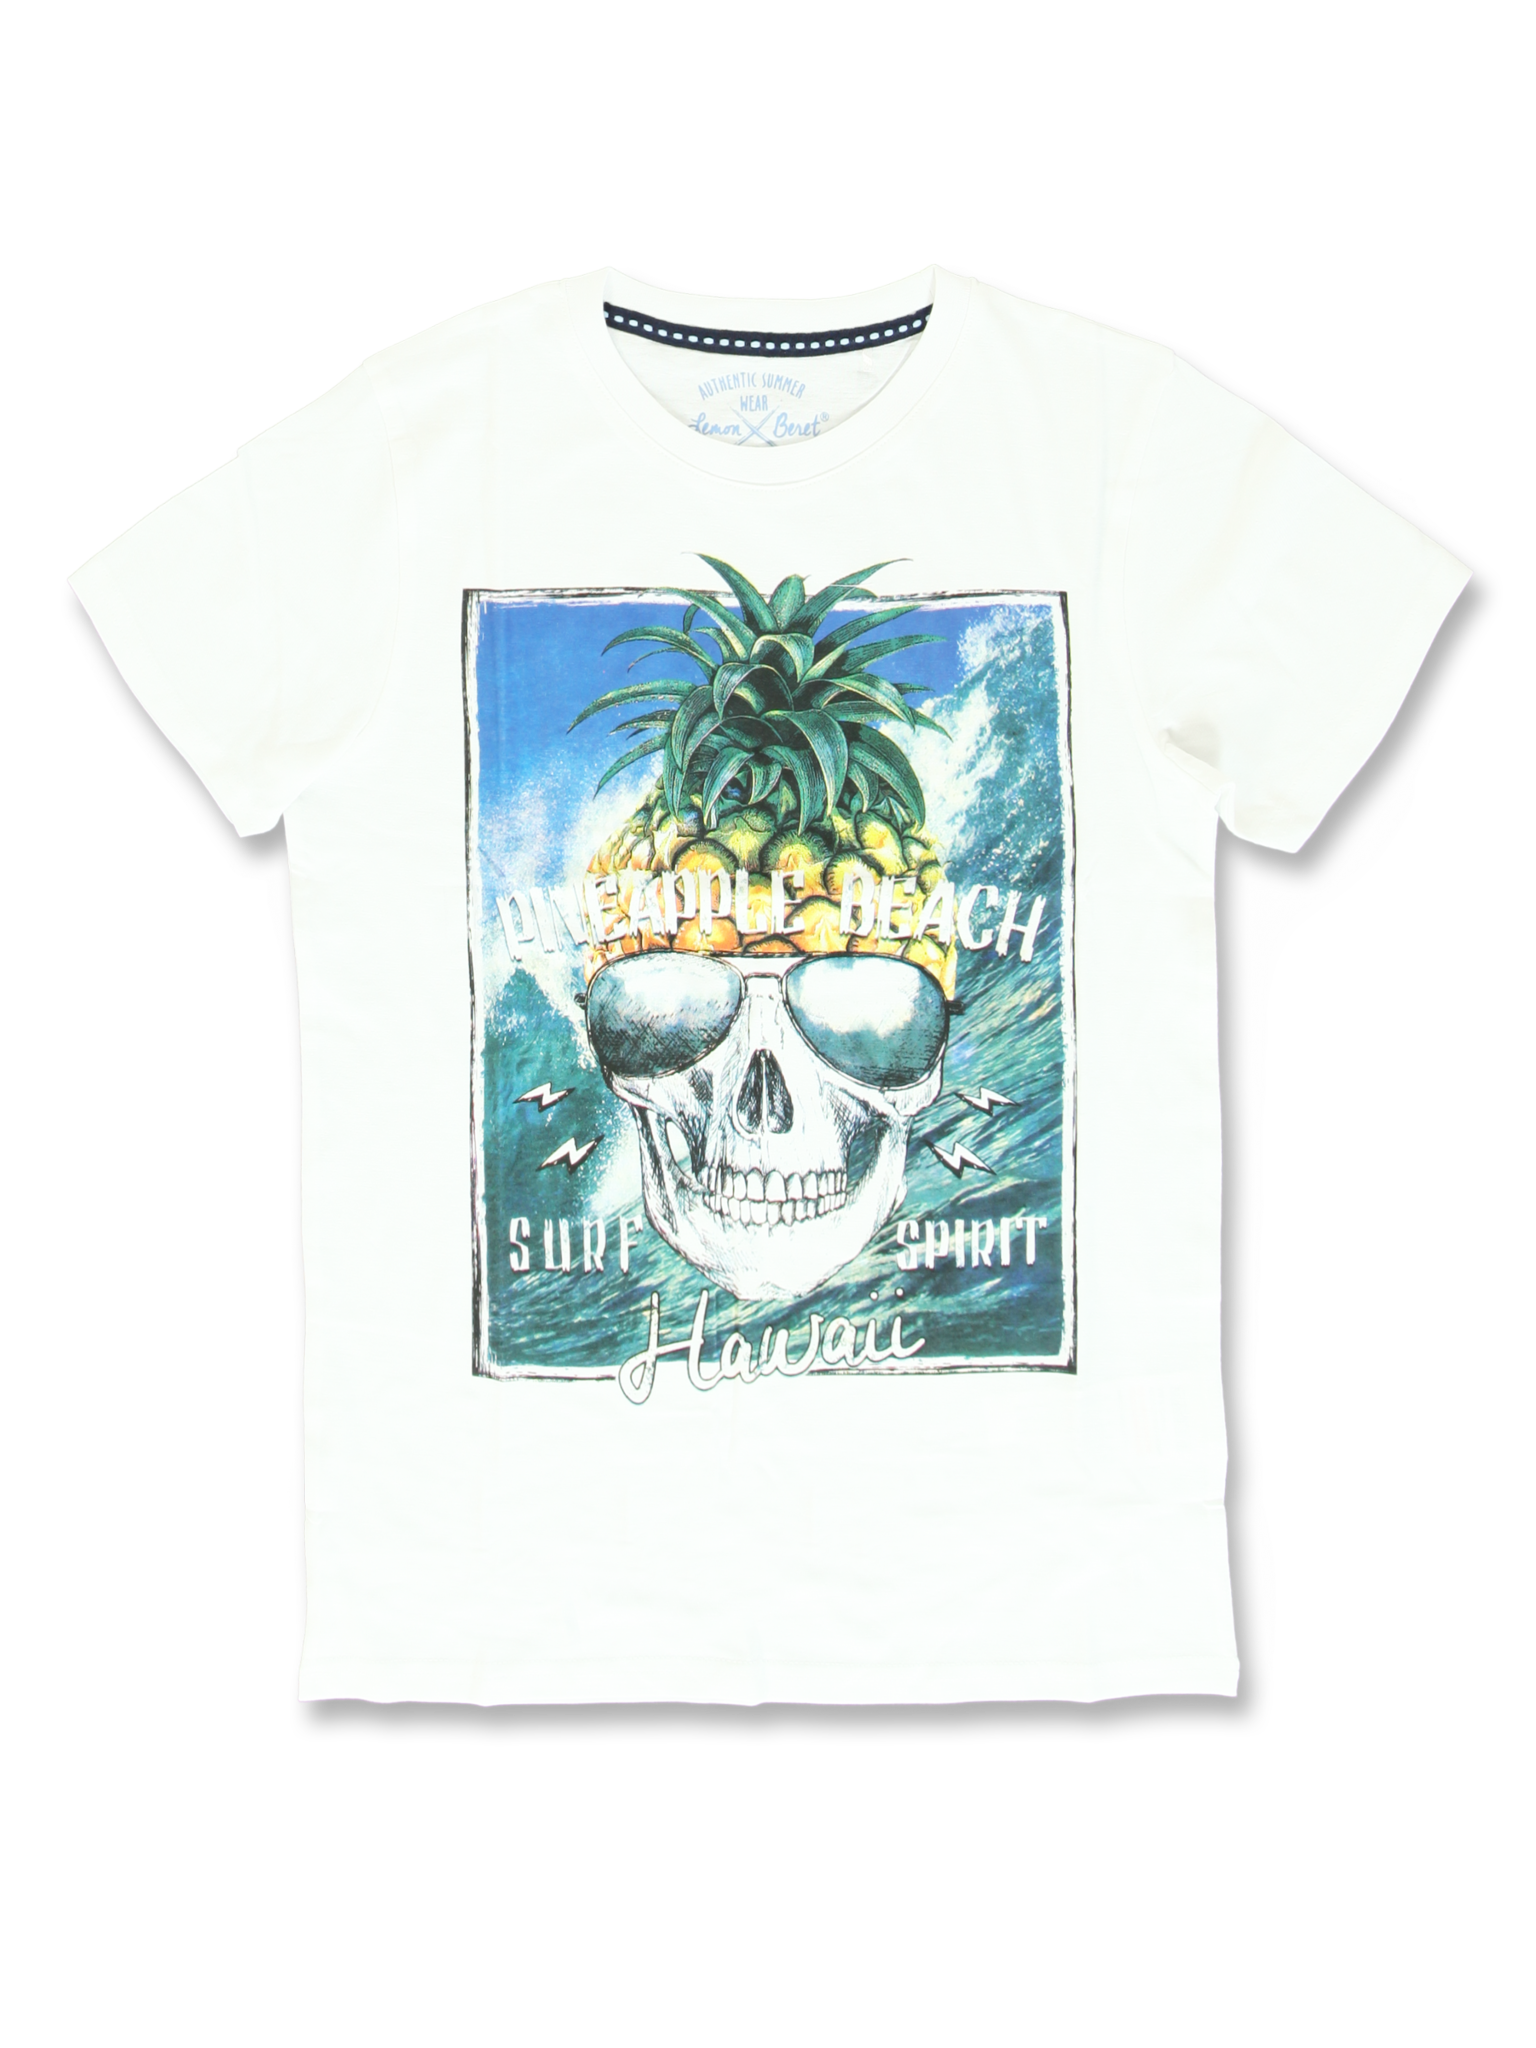 All Brands | Summerproducts Teen Boys | T-shirt | 12 pcs/box